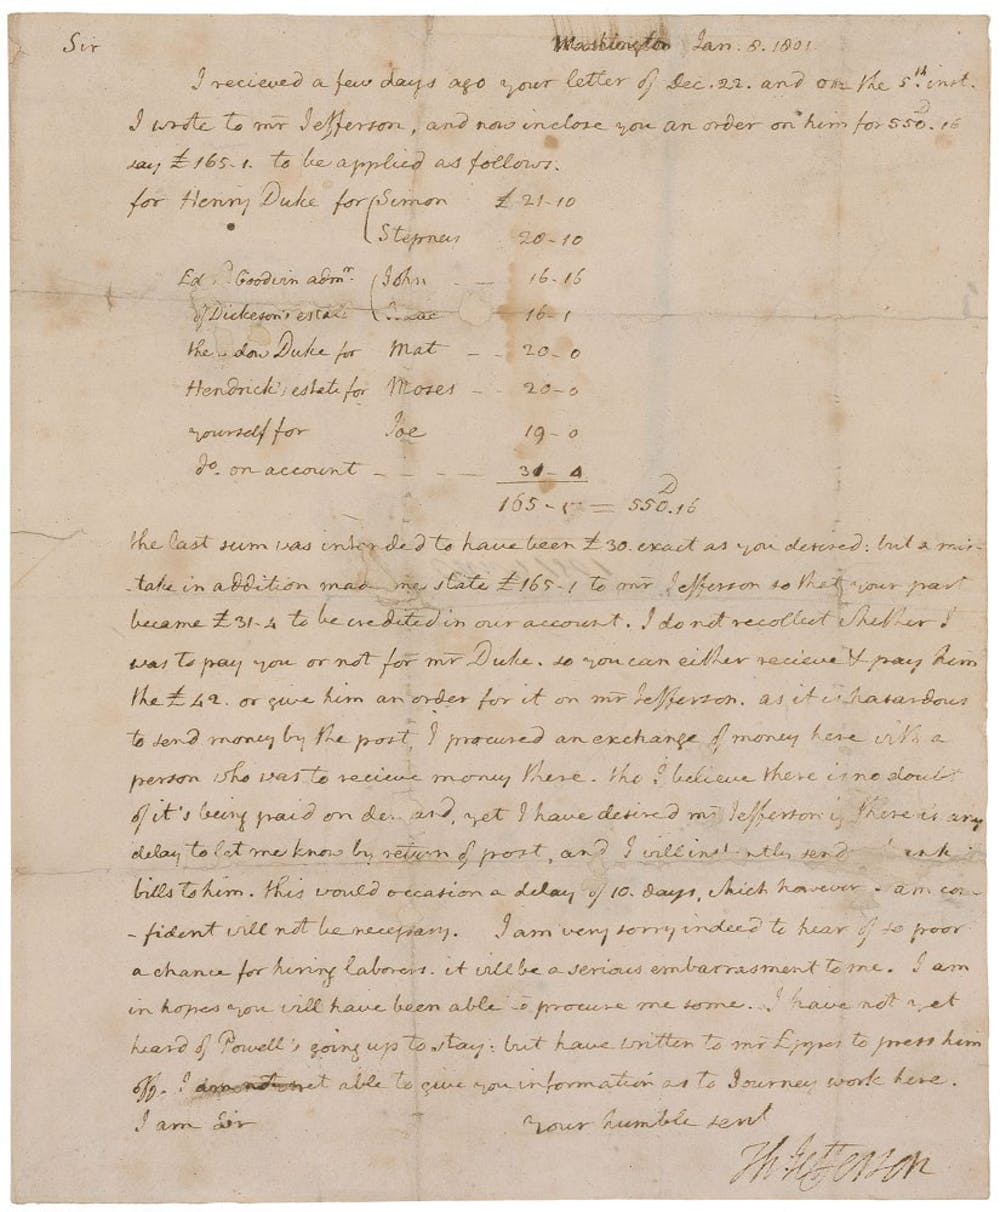 "<p>""I am very sorry indeed to hear of so poor a chance for hiring laborer,"" Jefferson wrote. ""It will be a serious embarrasment (sic) to me. I am in hopes you will have been able [t]o procure me some.""</p>"